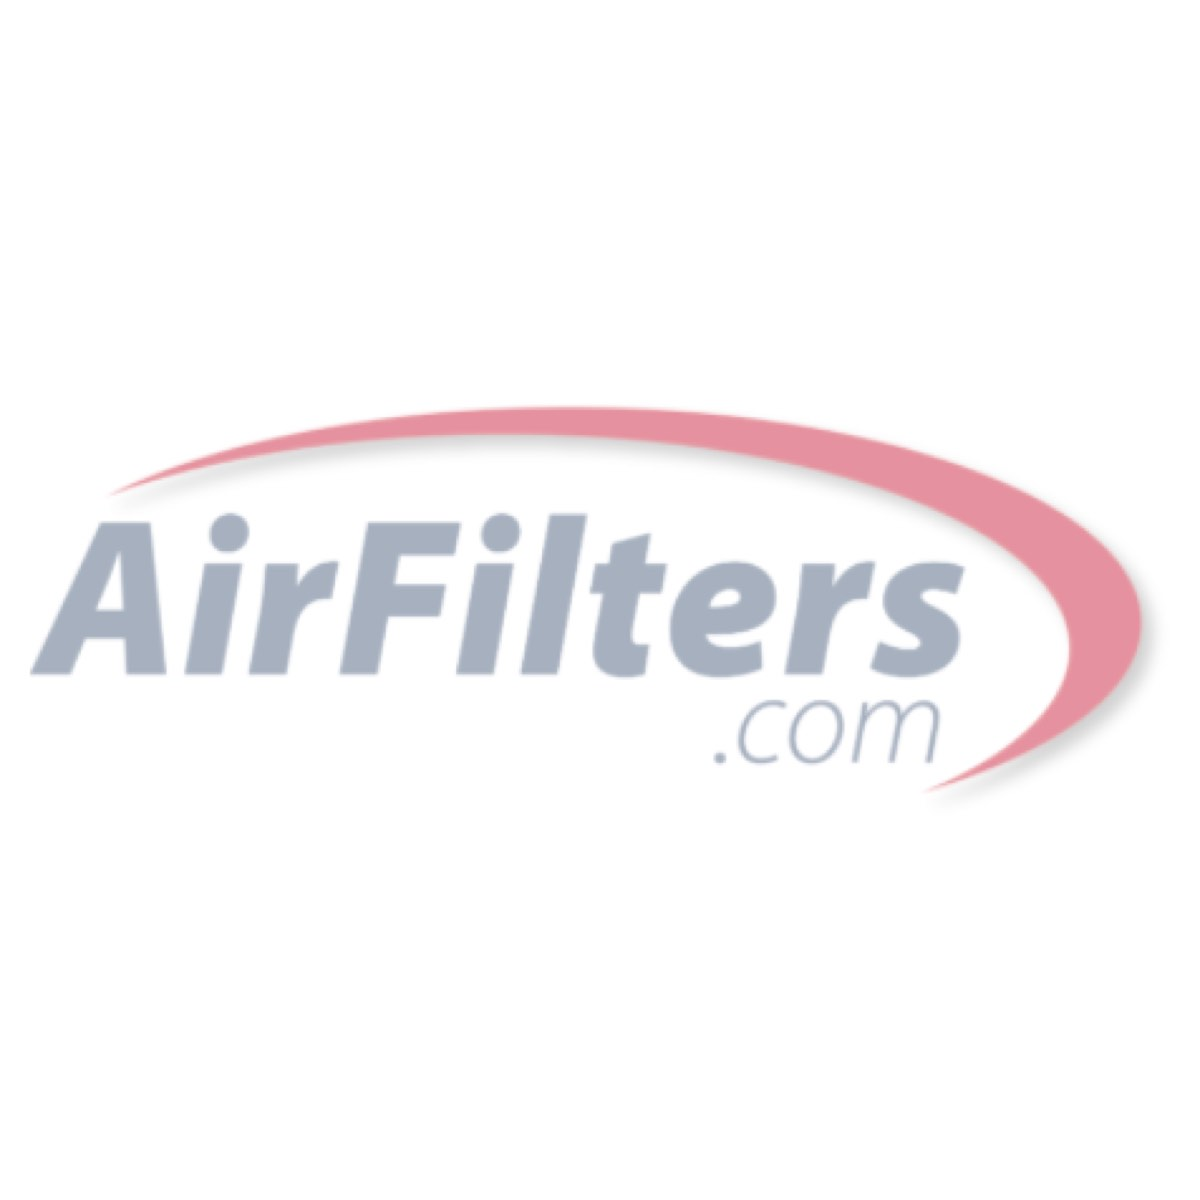 Electro Breeze Air Cleaner Filters by Accumulair®